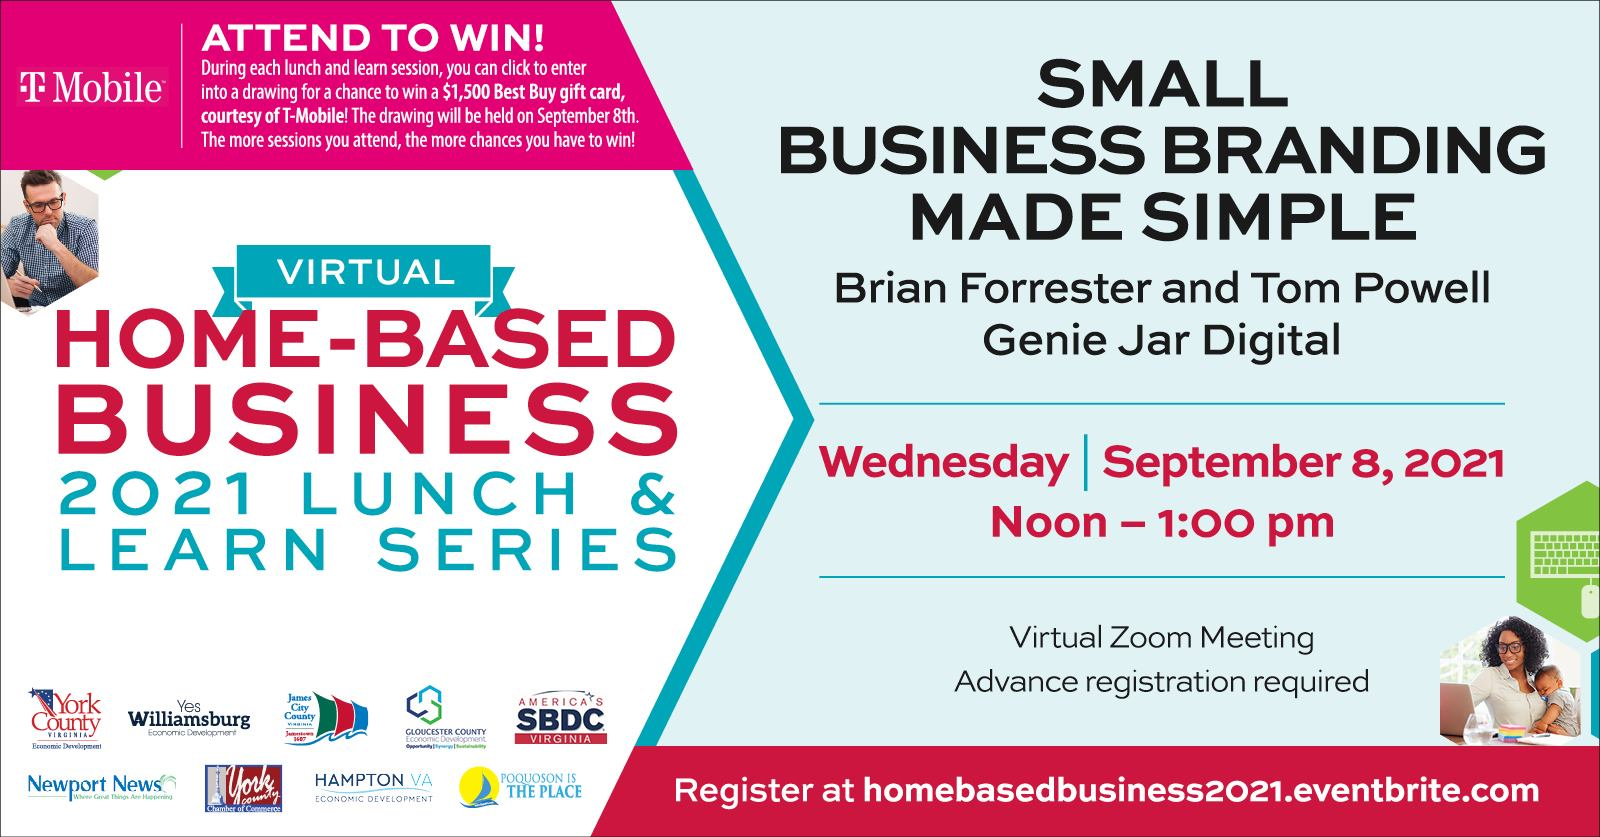 Virtual Home-based Business Lunch and Learn Series